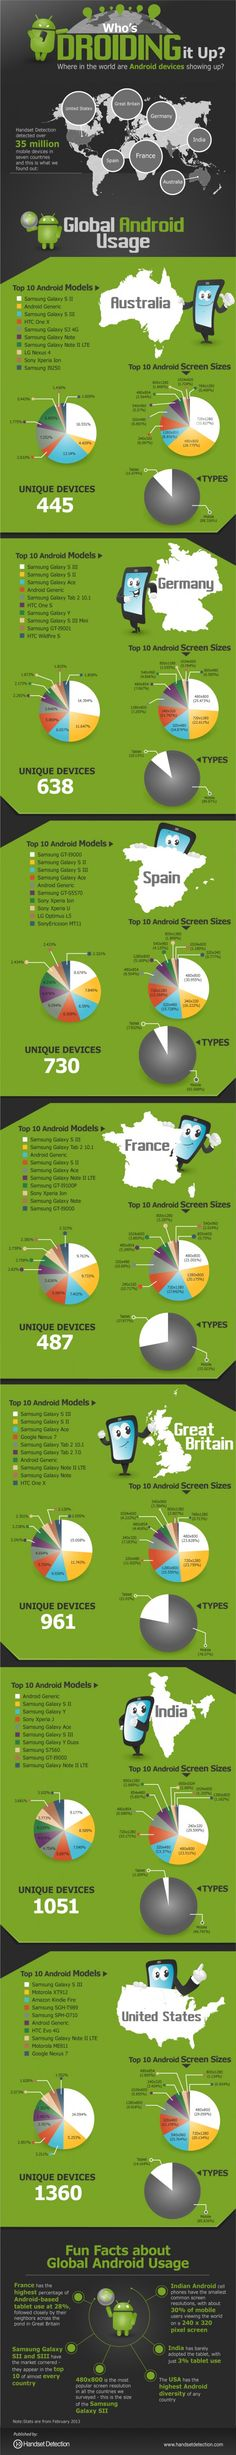 What Android devices are most popular in different countries? - Infographics Central » Infographics Central